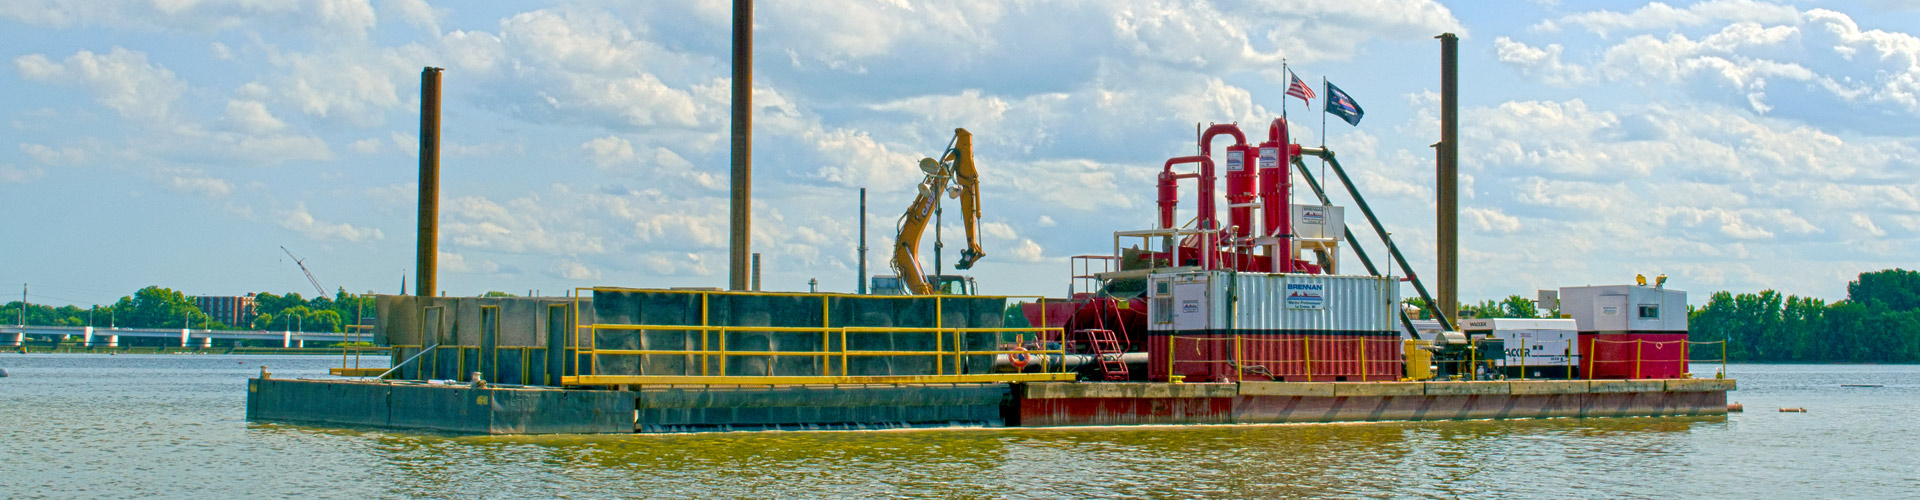 sand covers, quality sand covers, environmental remediation, environmental dredging, engineered cap installation, insitu caps, subaqueous sand covers, broadcast capping system, brennan bcs, river cleanup